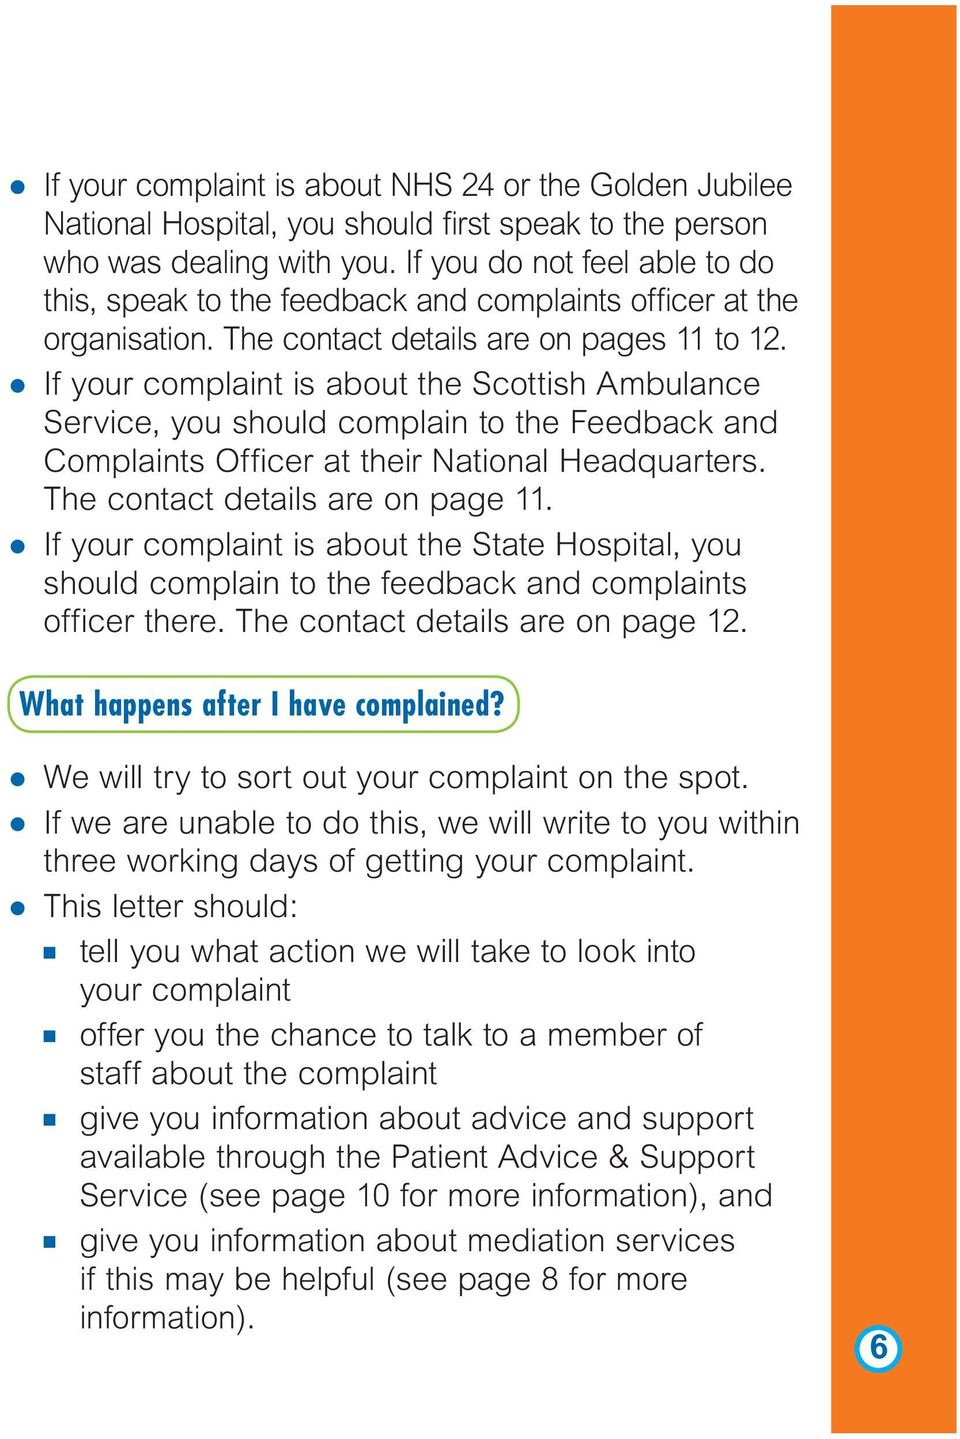 l If your complaint is about the Scottish Ambulance Service, you should complain to the Feedback and Complaints Officer at their National Headquarters. The contact details are on page 11.